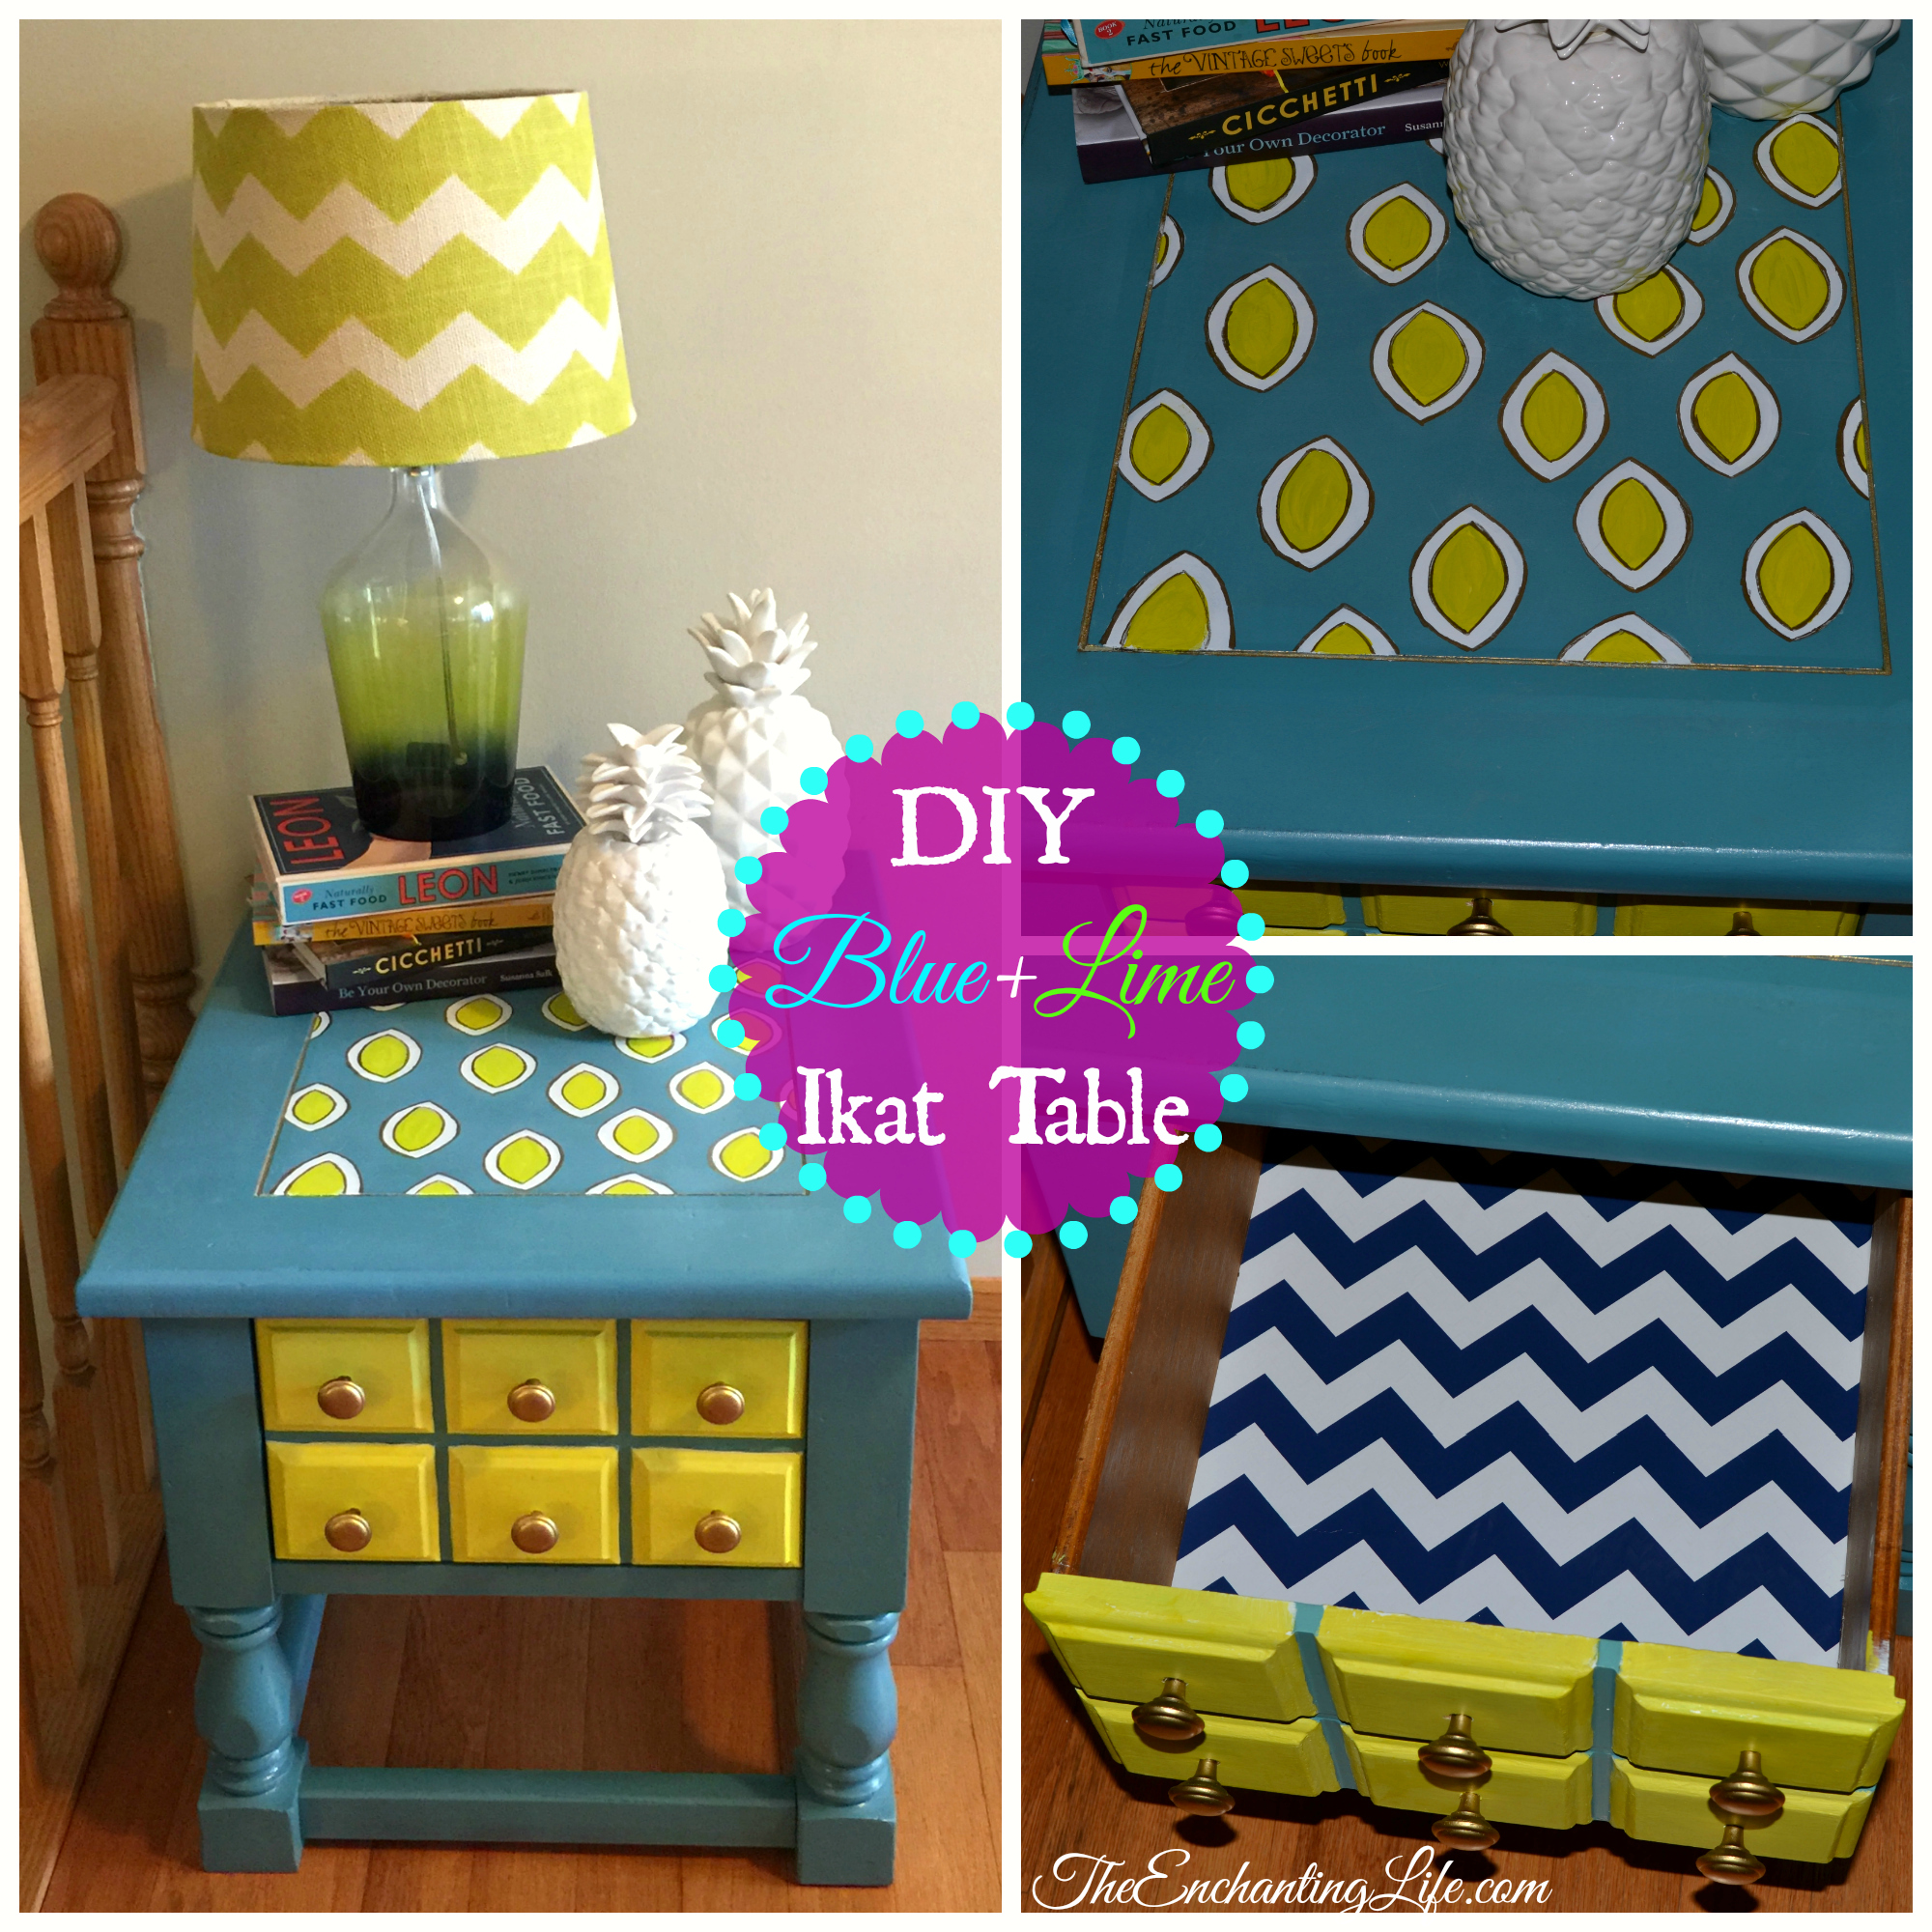 DIY Blue and Lime Ikat Side Table